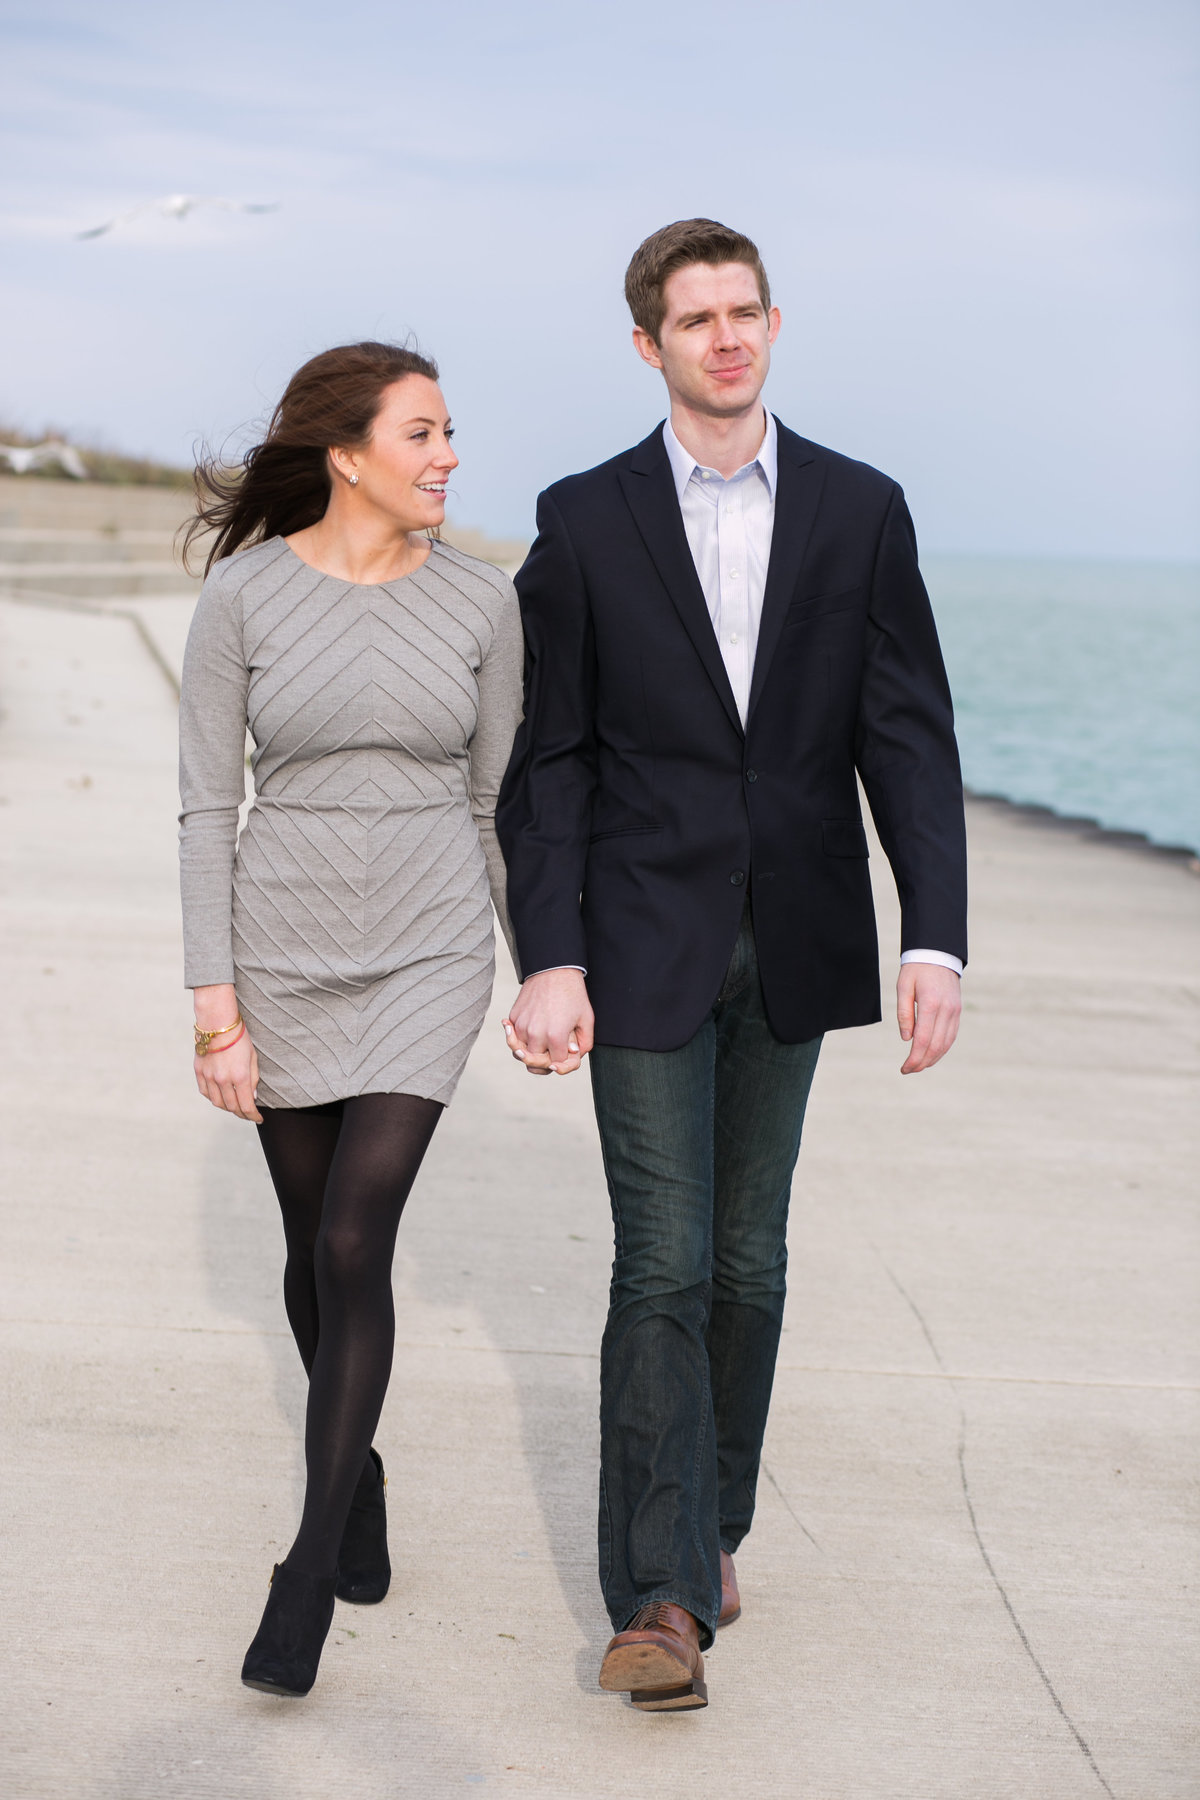 Montrose-Harbor-Engagement-07